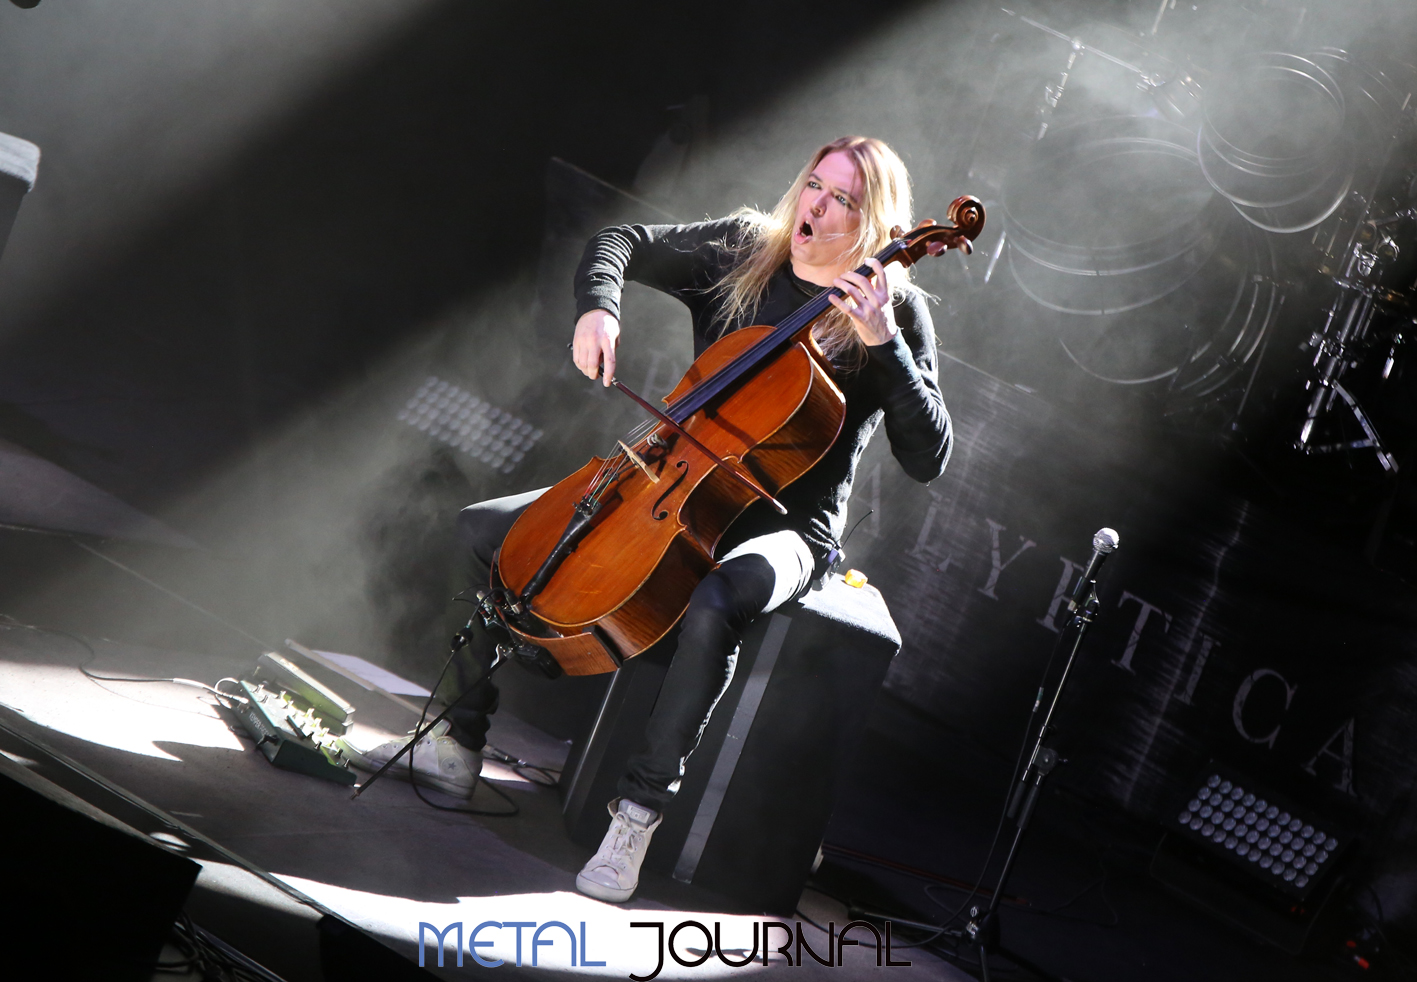 apocalyptica-metal journal pic 3